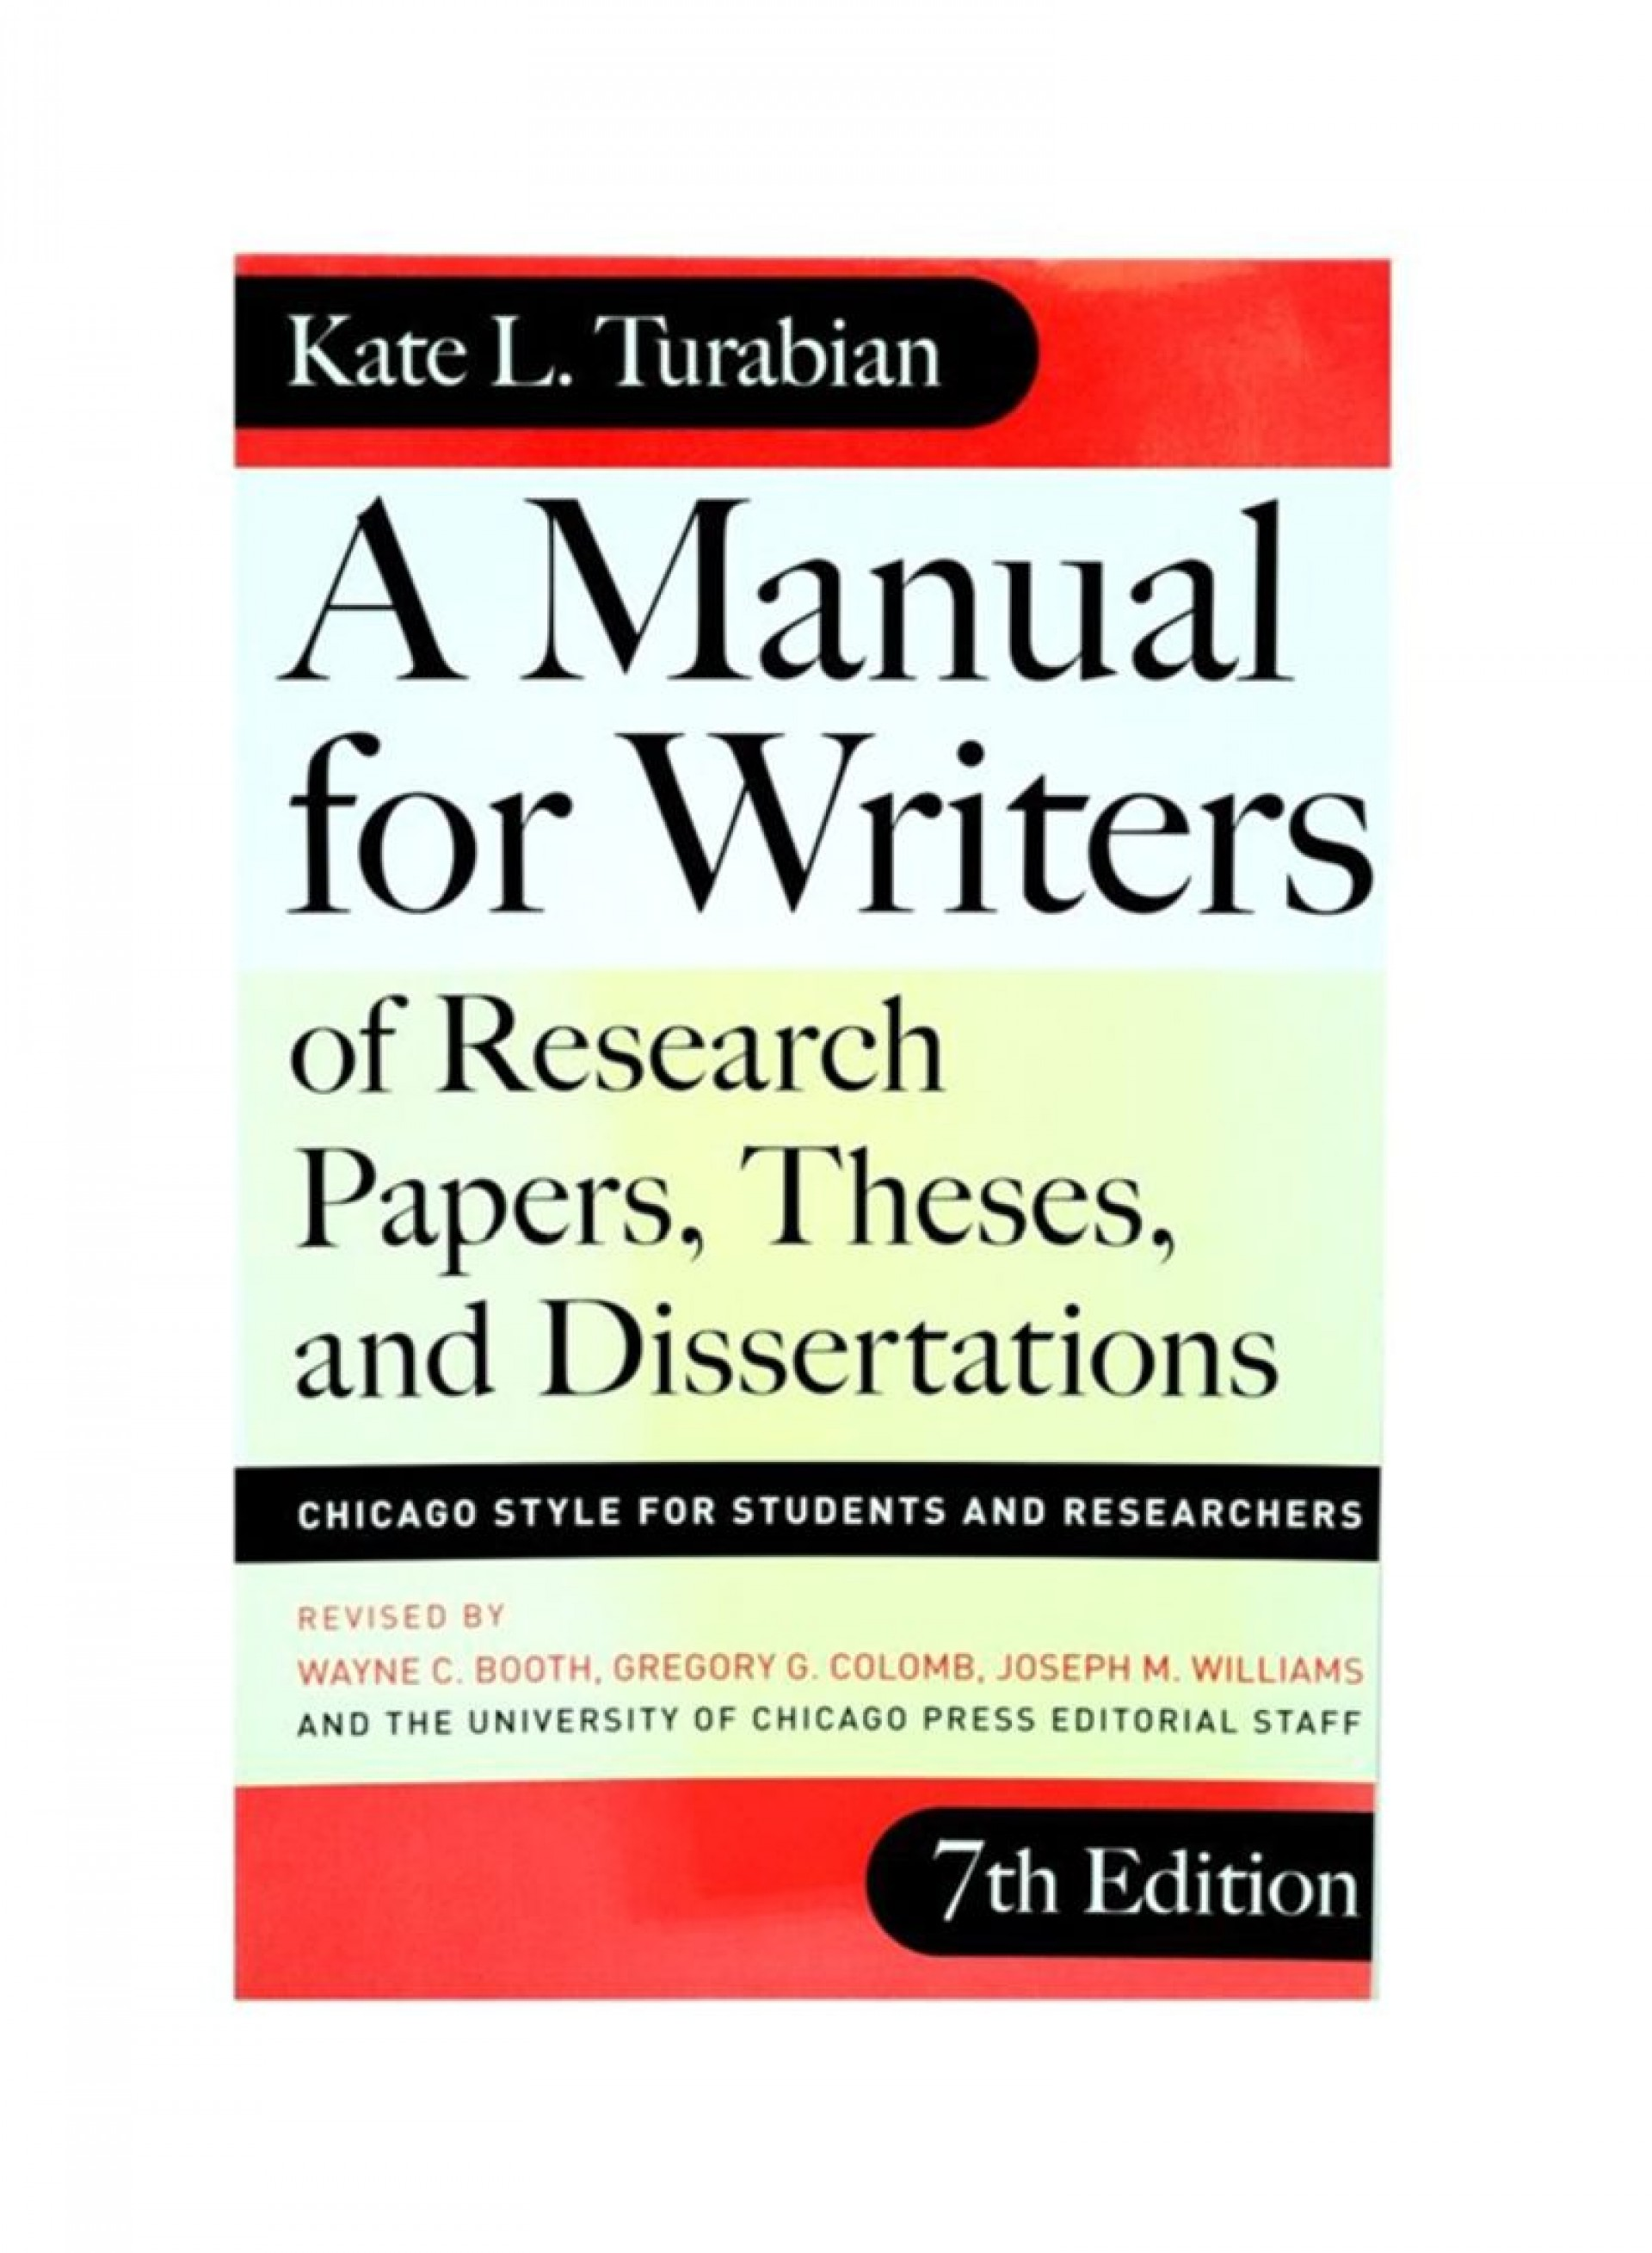 021 Research Paper N21270079a 1 Manual For Writers Of Papers Theses And Magnificent Dissertations A Amazon 9th Edition Pdf 8th 13 1920